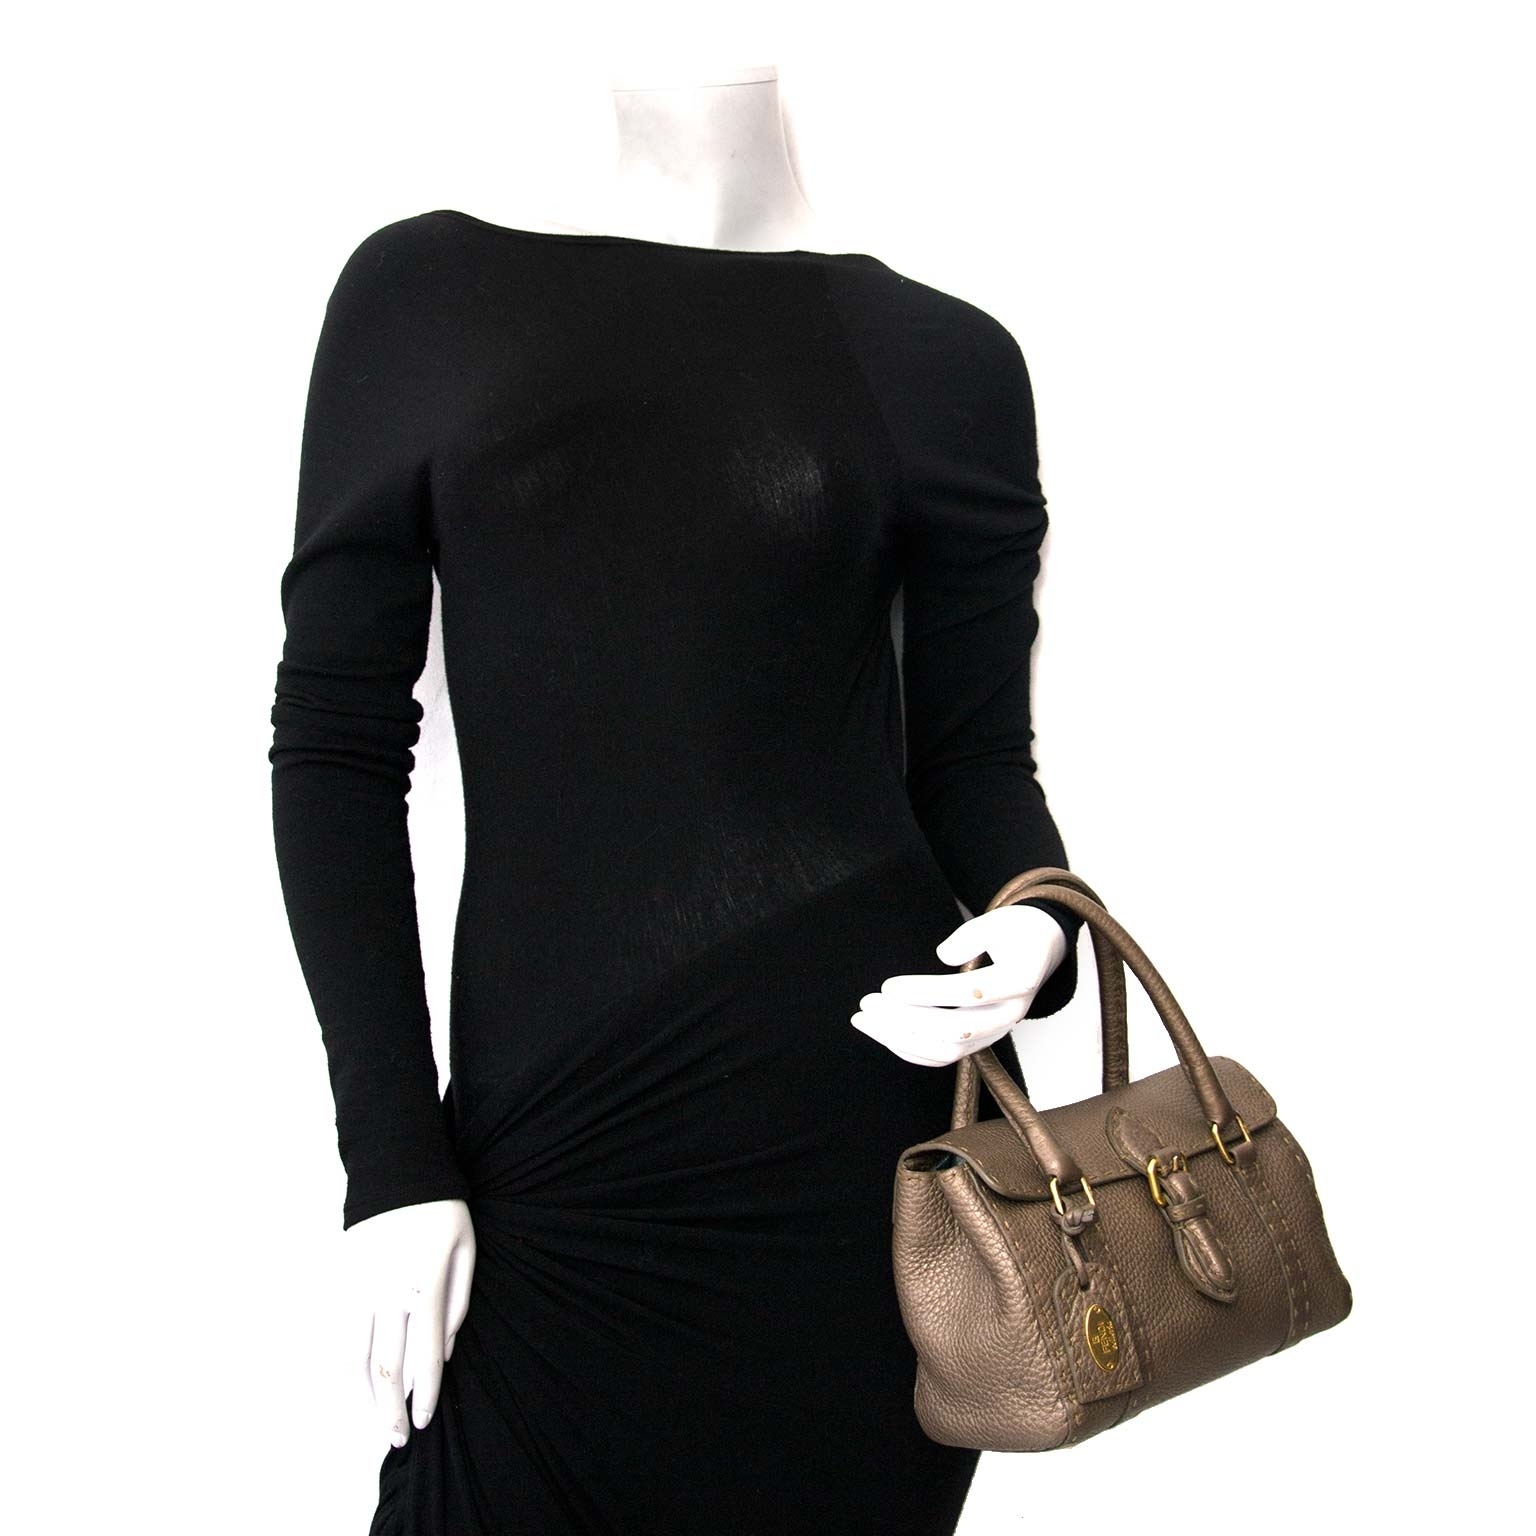 Interested in an authentic Fendi Bronze Selleria Bag?